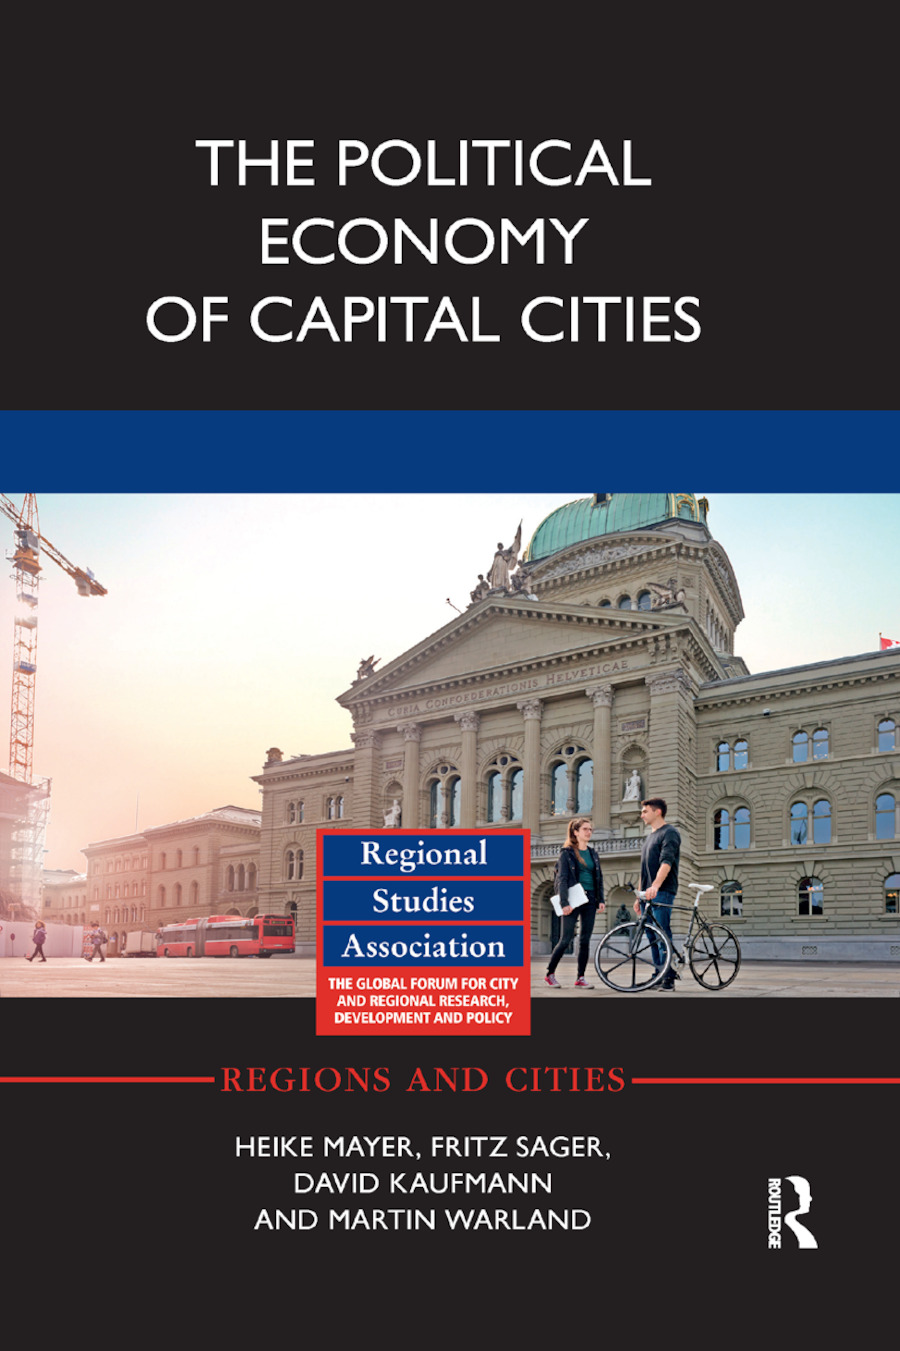 The Political Economy of Capital Cities book cover